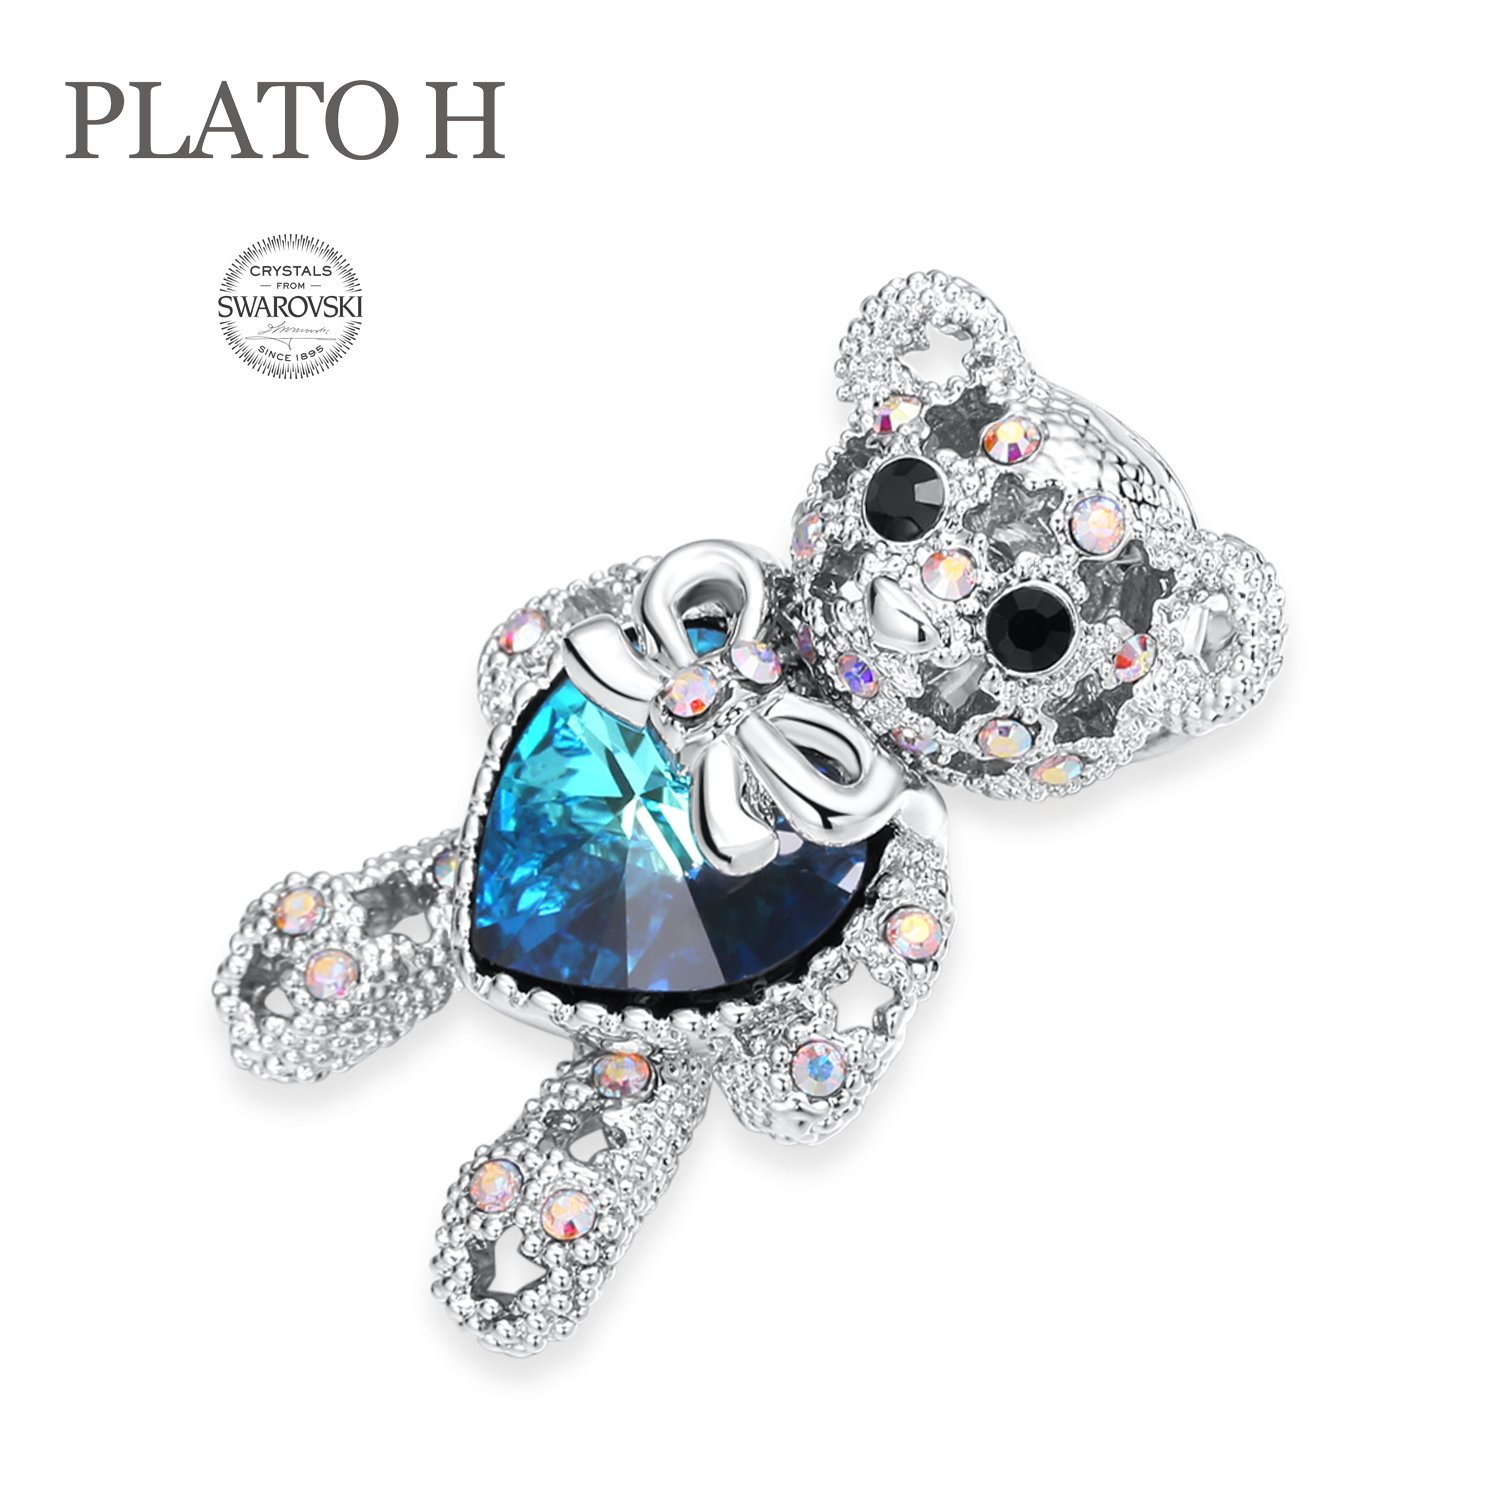 PLATO H Cute Animal Brooch Lovely Bear Heart Brooch & Pins with Swarovski Crystals, Fashion Jewelry Gift for Women,, Blue Crystal Bear Brooch by PLATO H (Image #3)